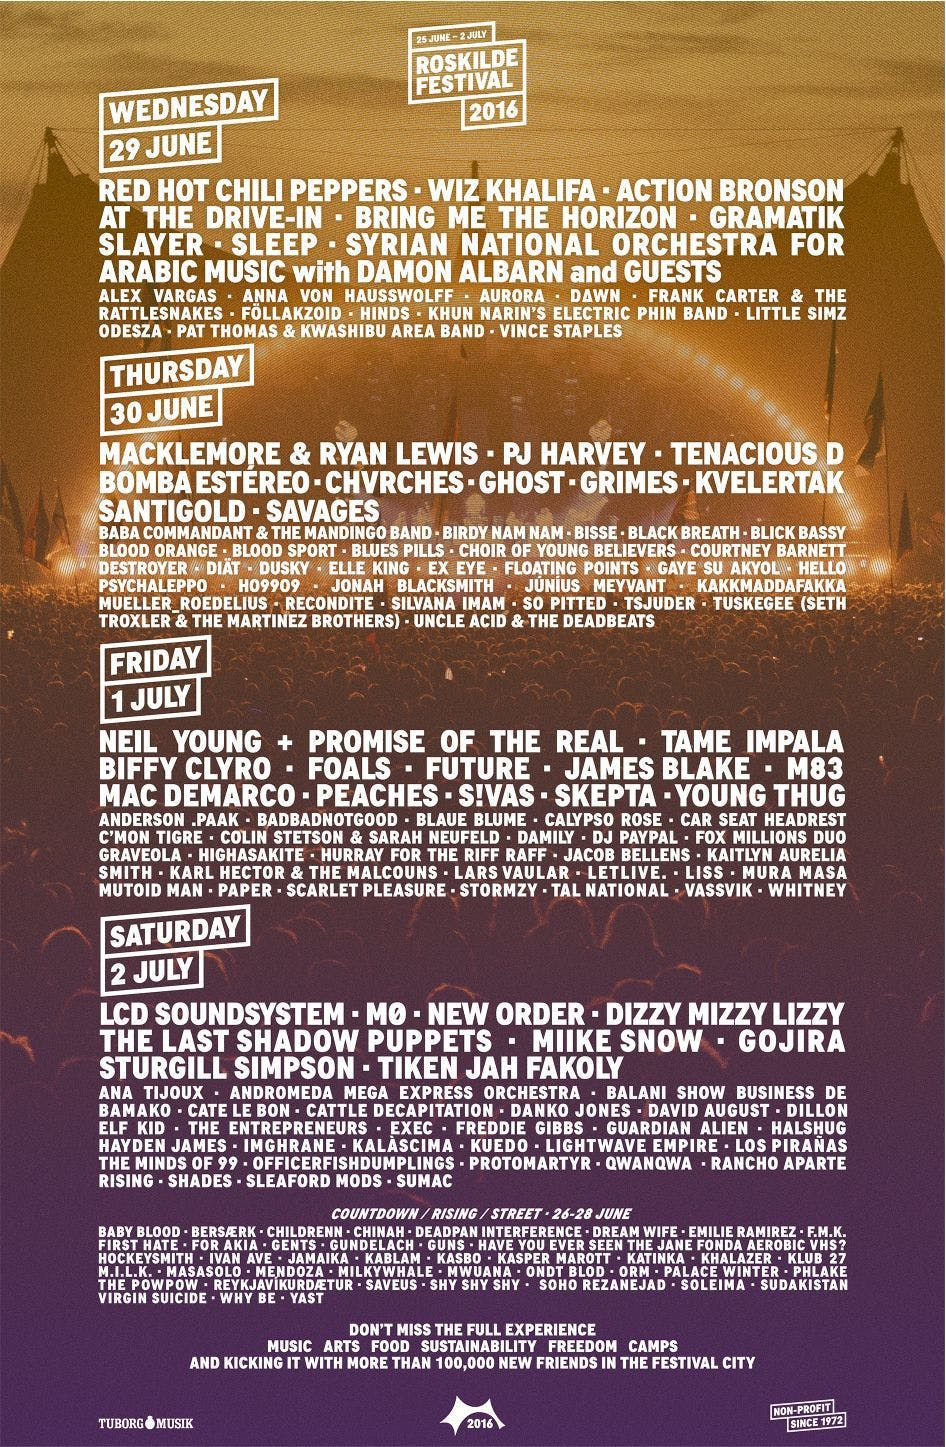 Biffy Clyro, Slayer and more announced for Roskilde festival